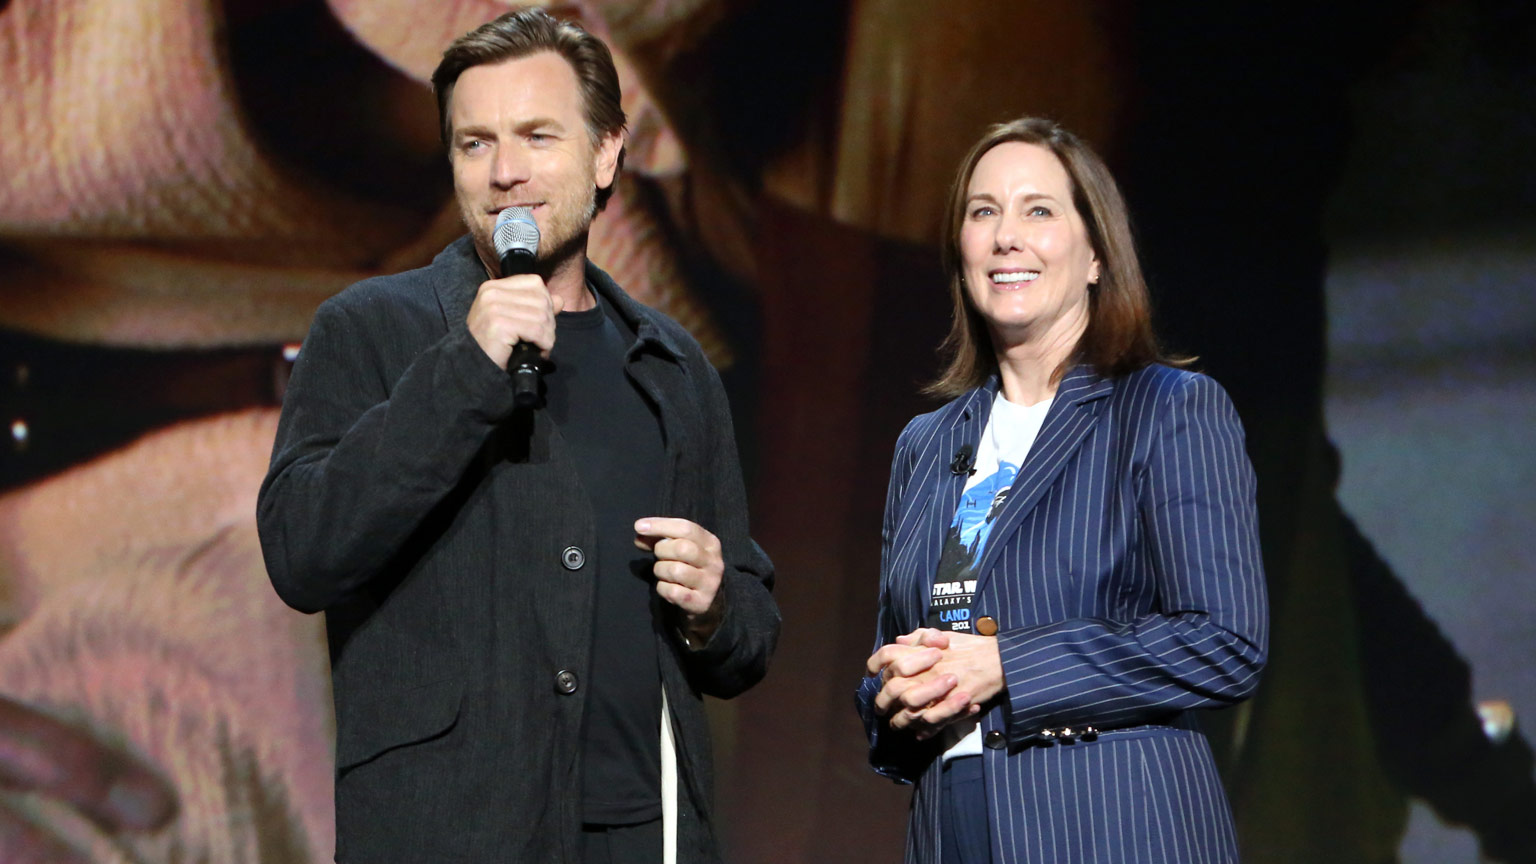 Ewan McGregor and Kathleen Kennedy at D23 Expo 2019.